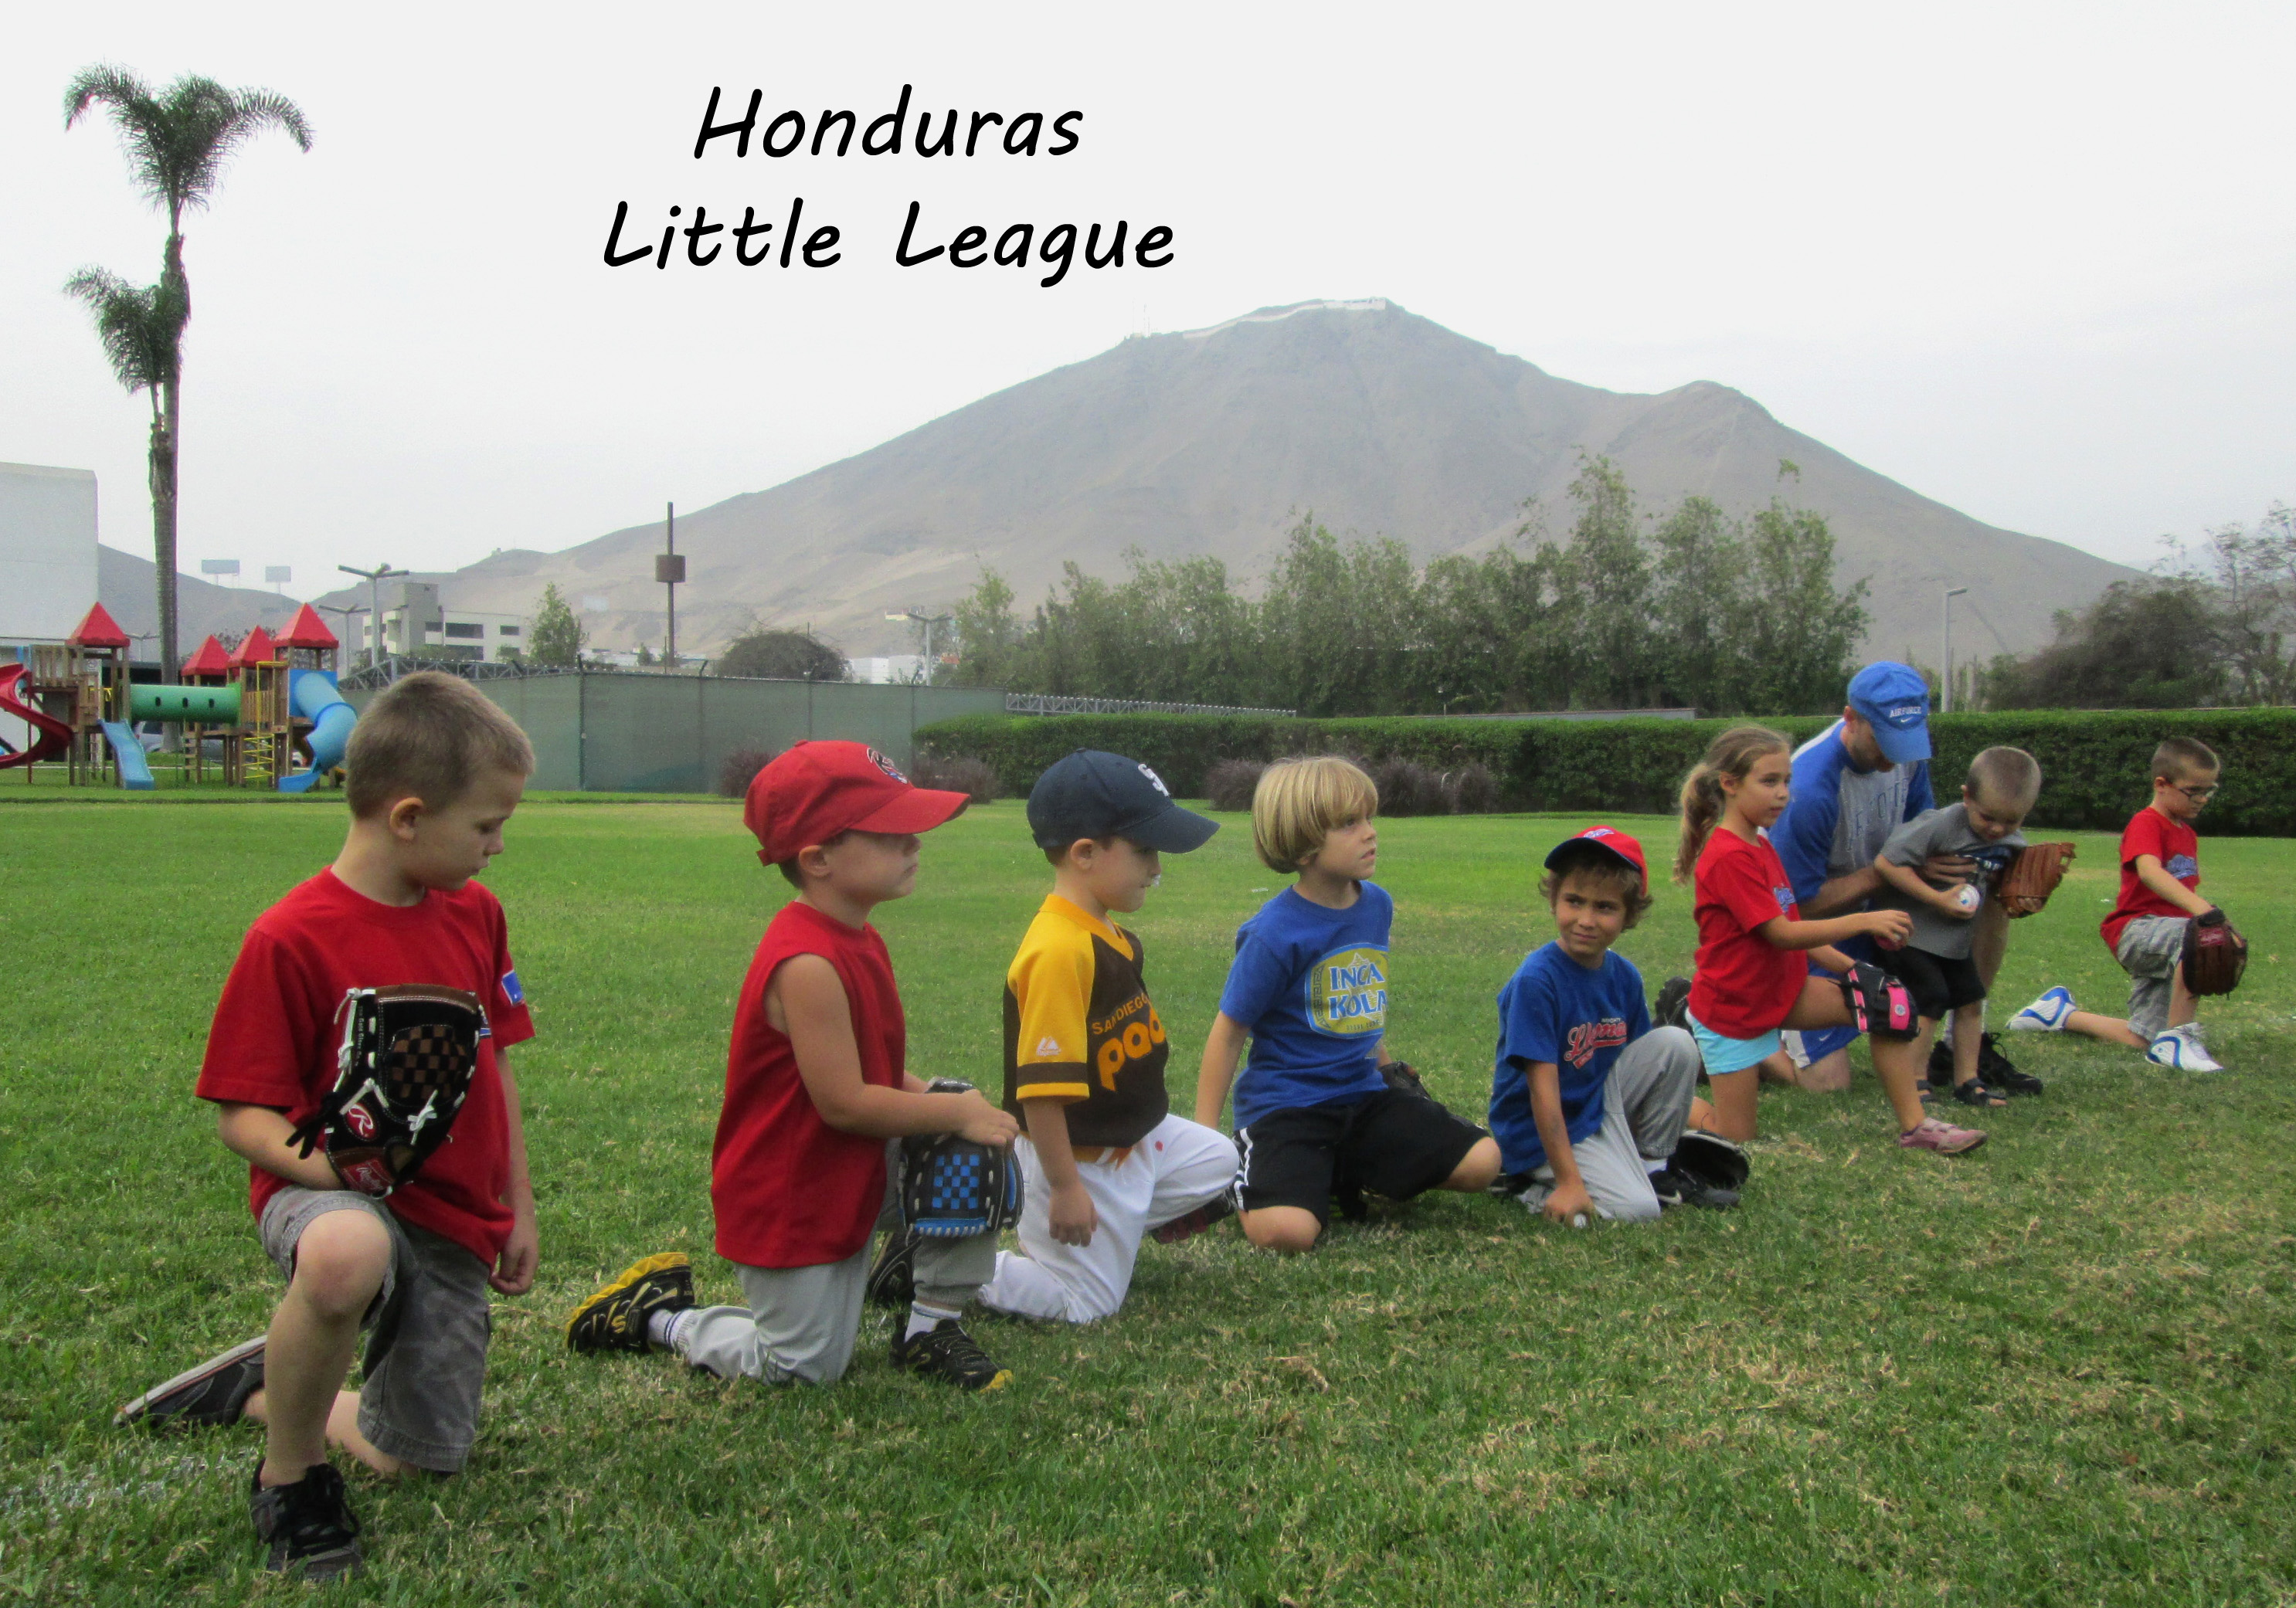 Honduras Lil League (1)